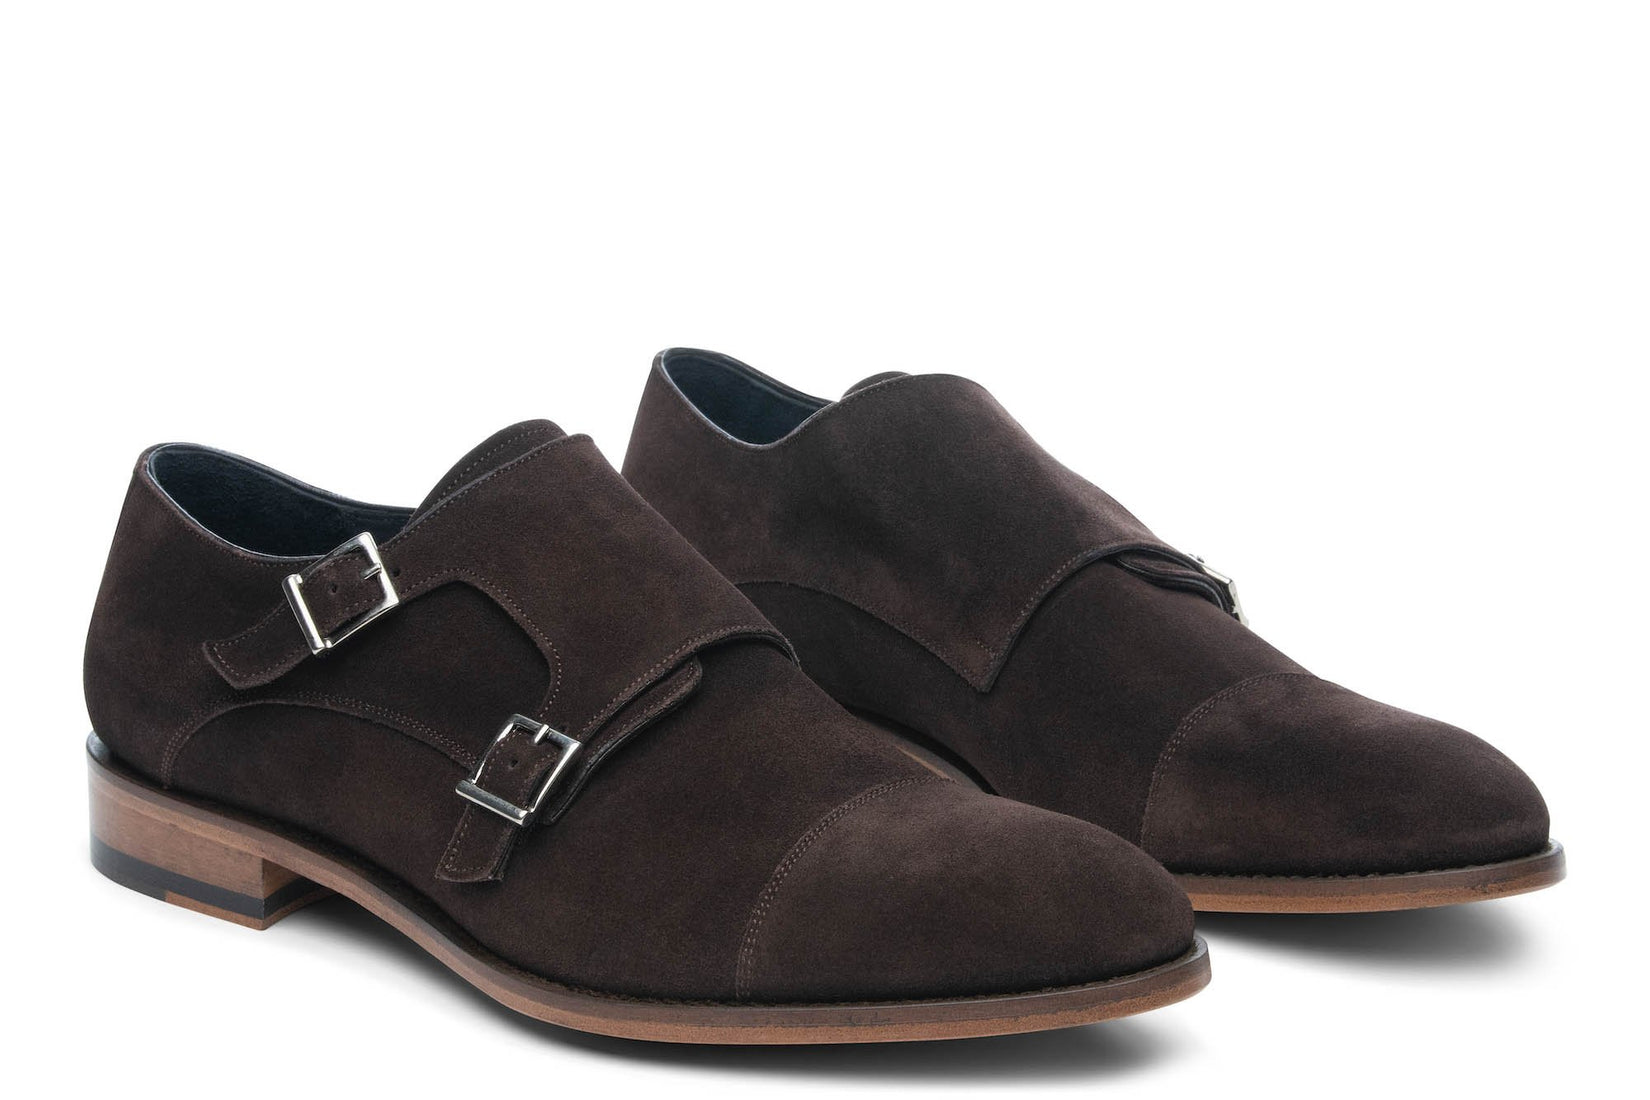 Thursday Double Monkstrap in Espresso (FINAL SALE)